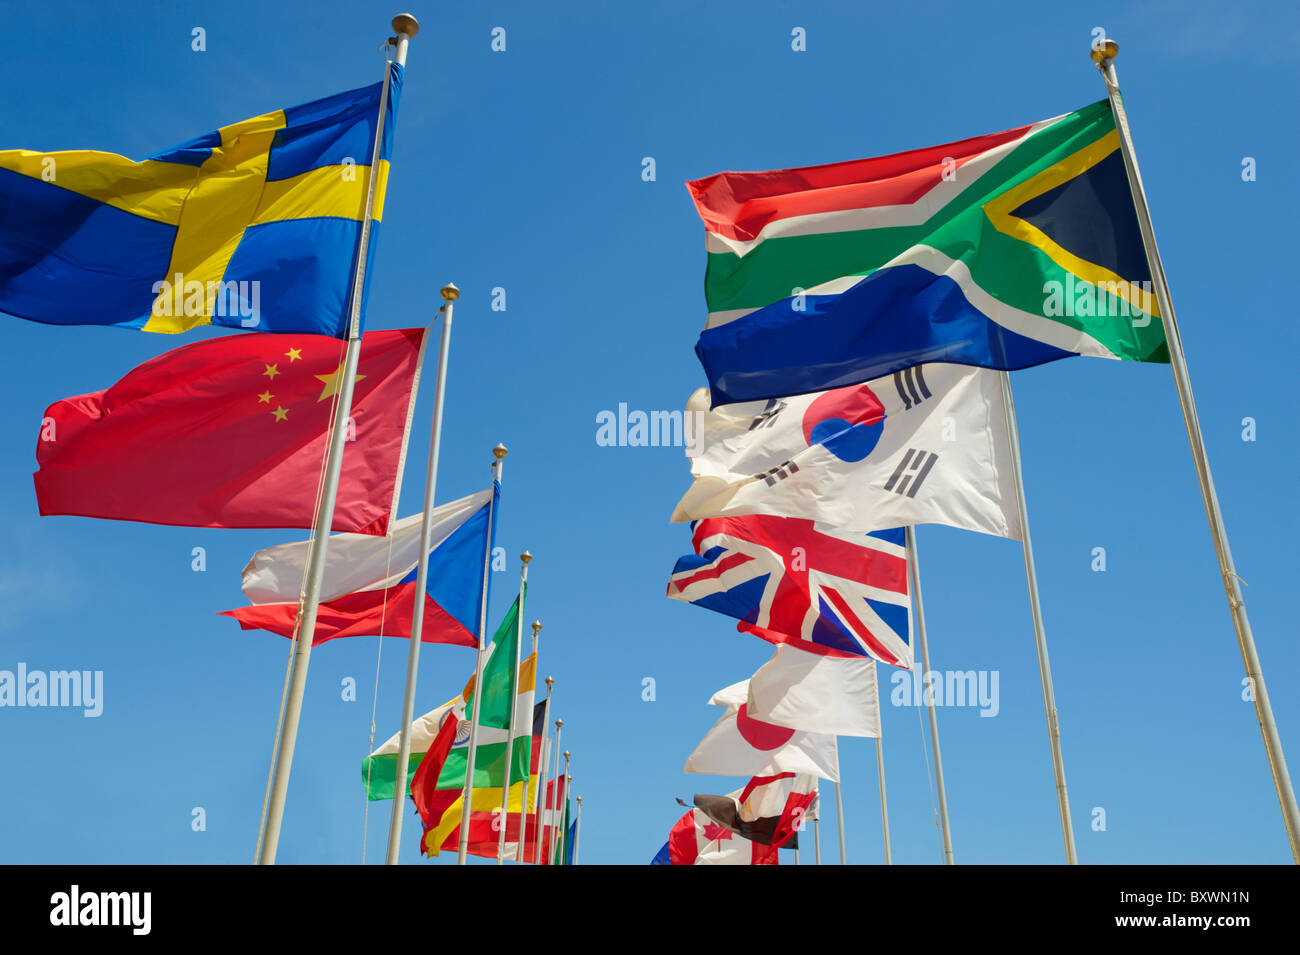 World countries International flags flying - Stock Image